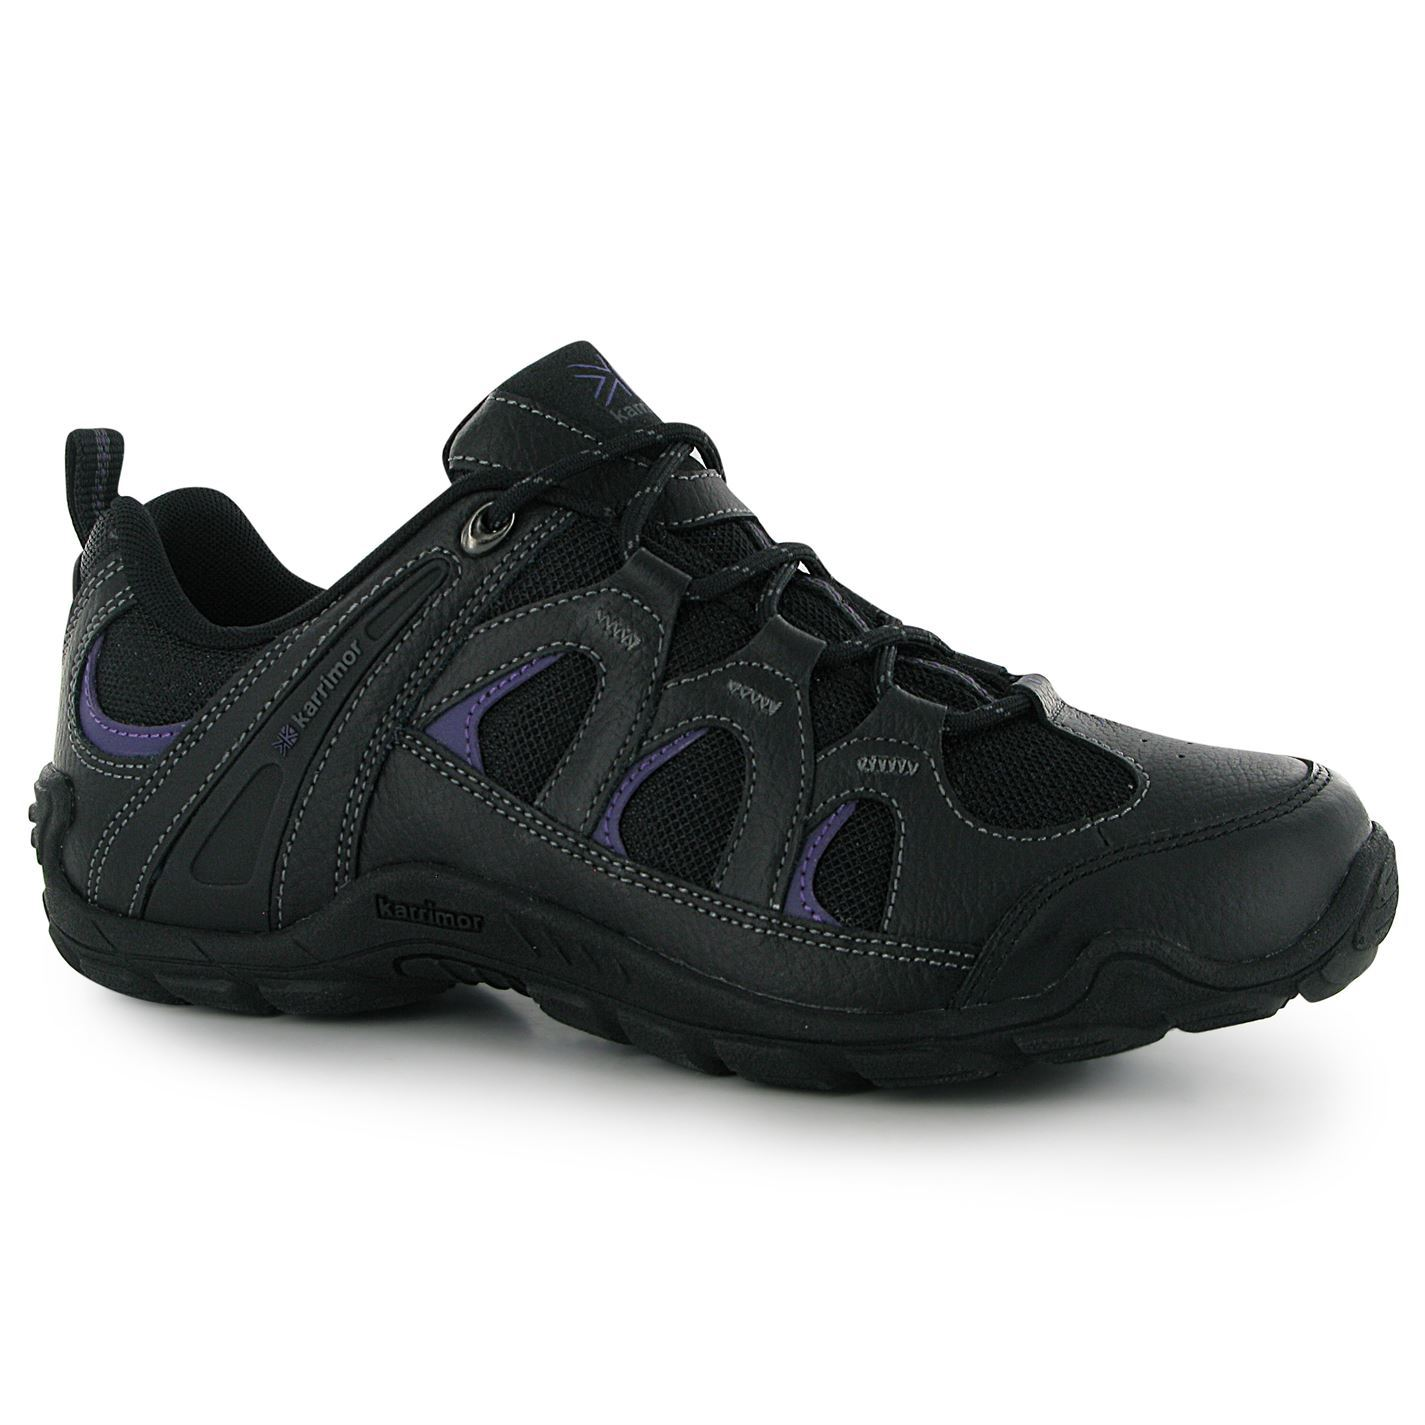 Shop for and buy womens black sneakers online at Macy's. Find womens black sneakers at Macy's.